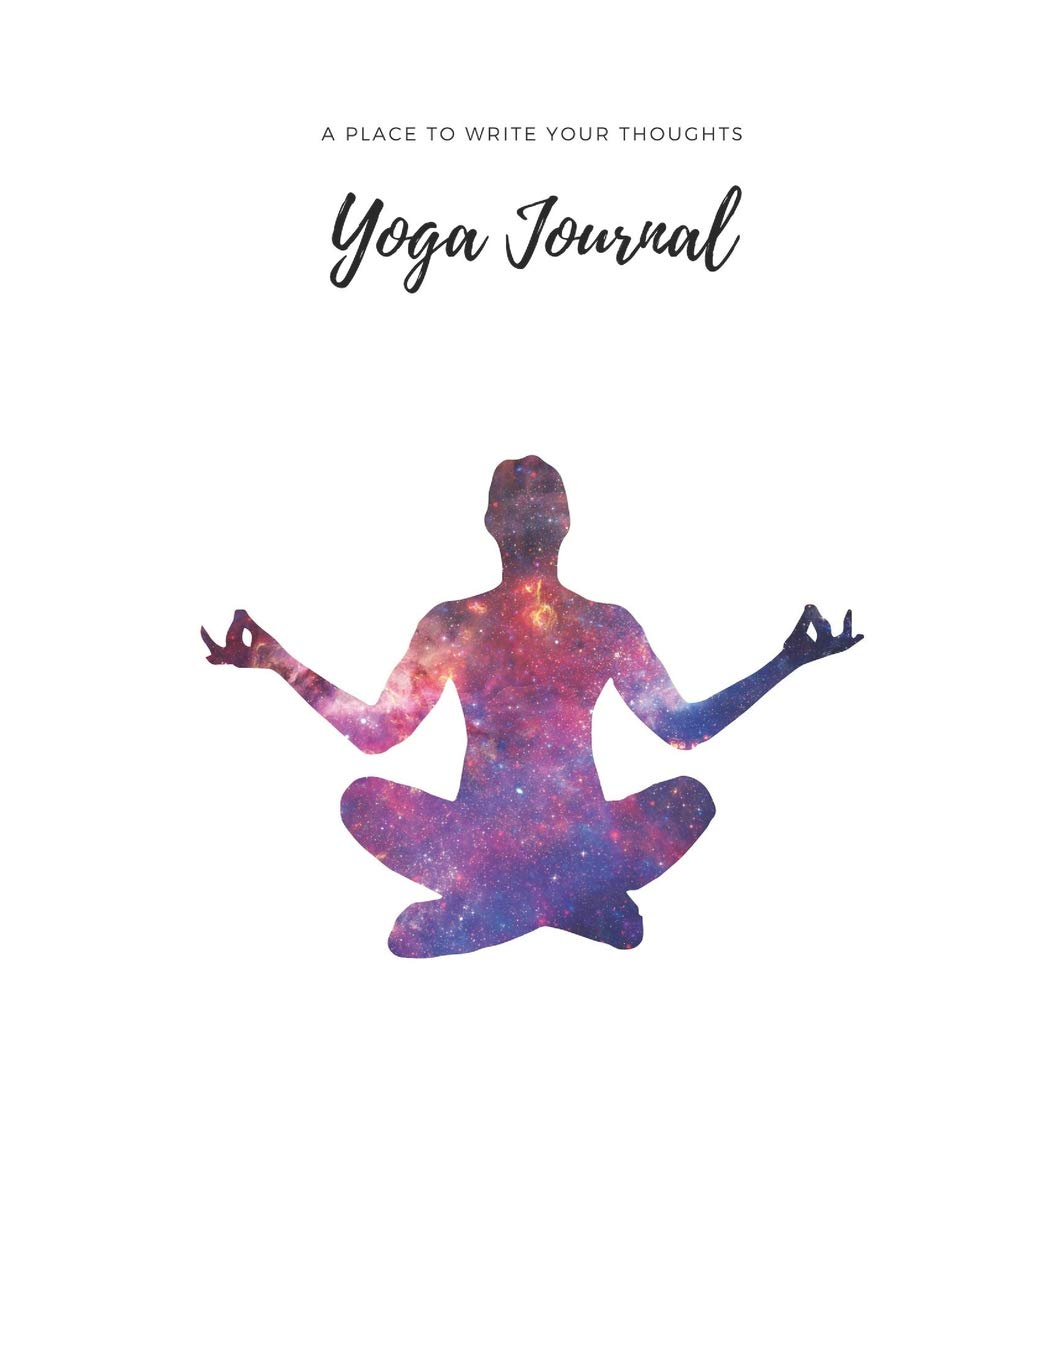 Yoga Journal: Blank Notebook to Write your thoughts on your